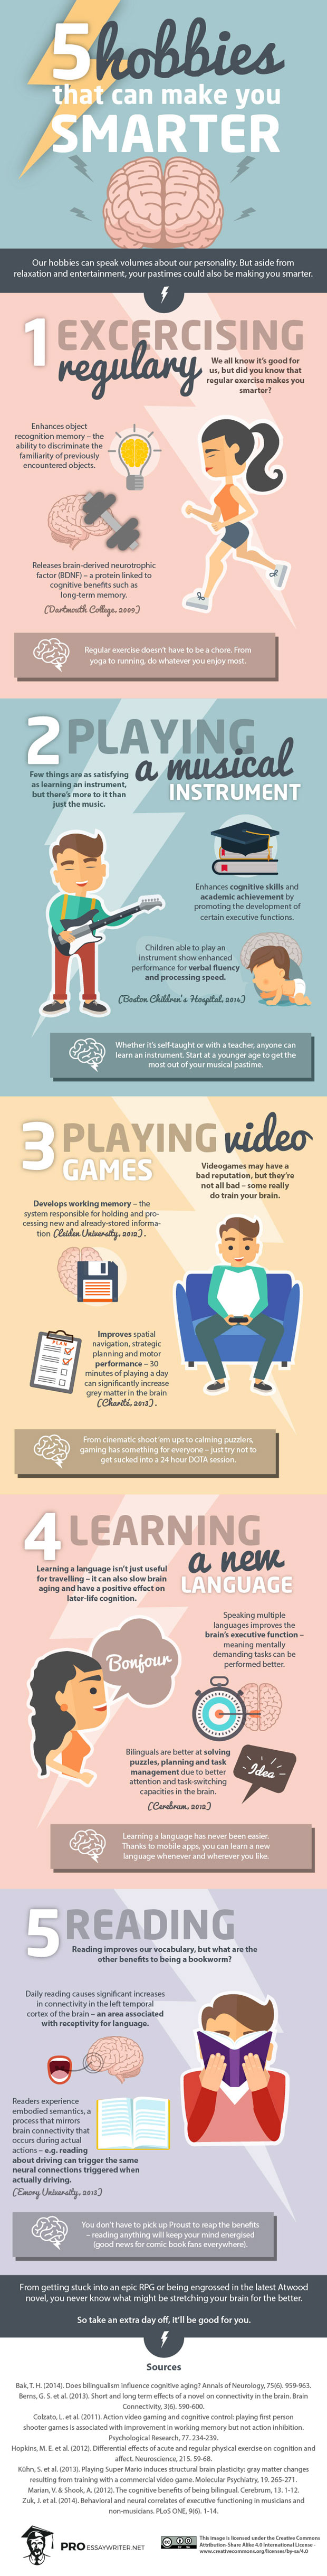 hobbies-make-you-smarter-infographic